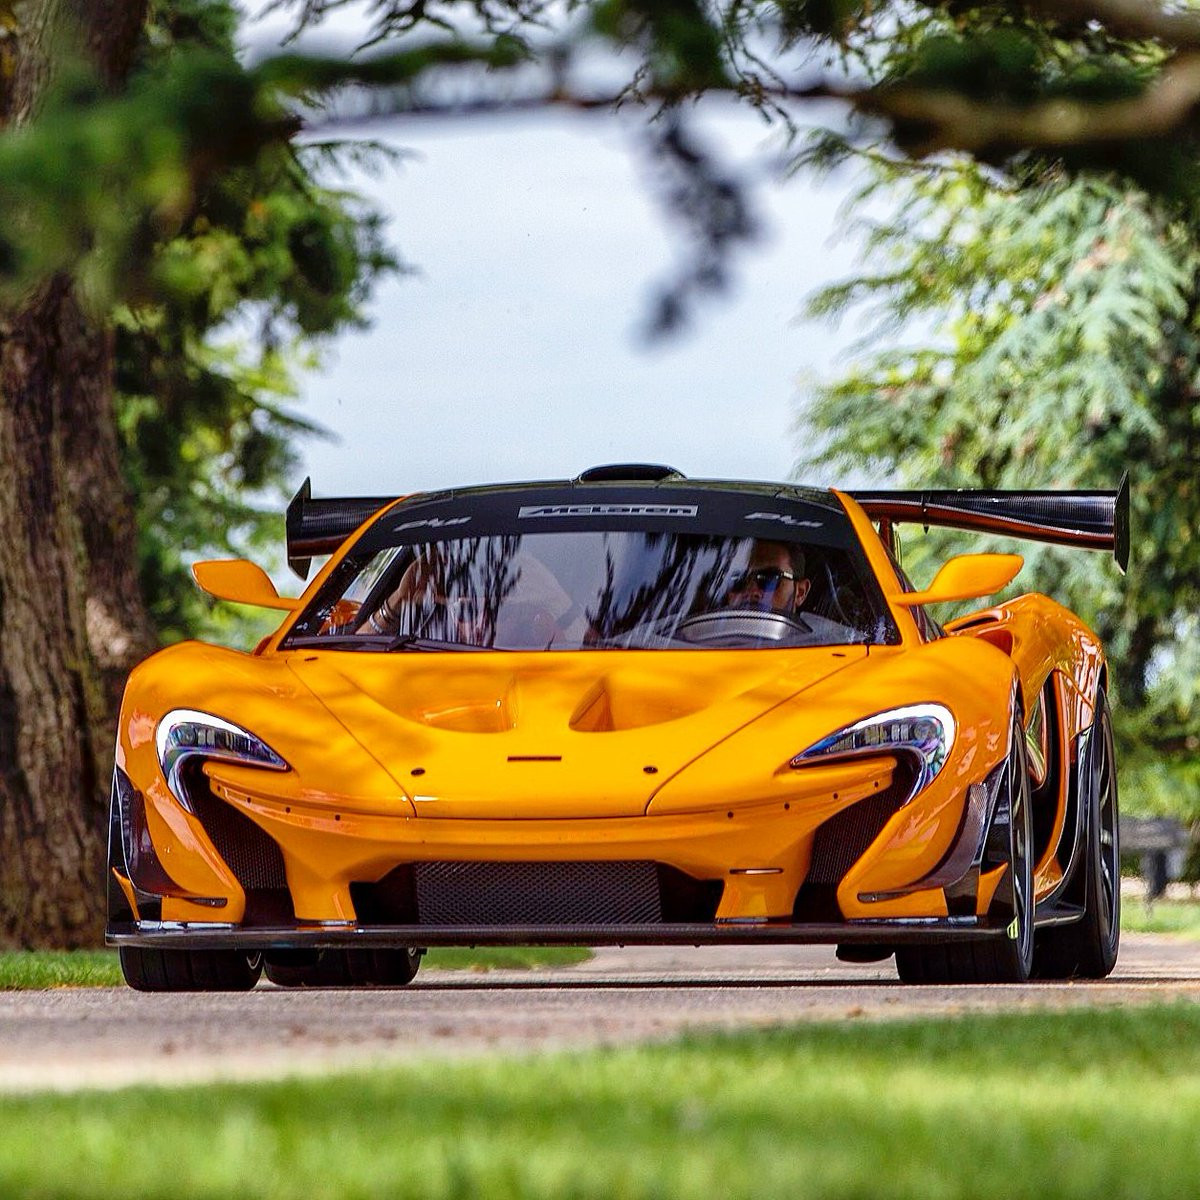 Mclaren P1 Lm >> Madwhips On Twitter Mclaren P1 Lm Photo By Ig Fastnexotic